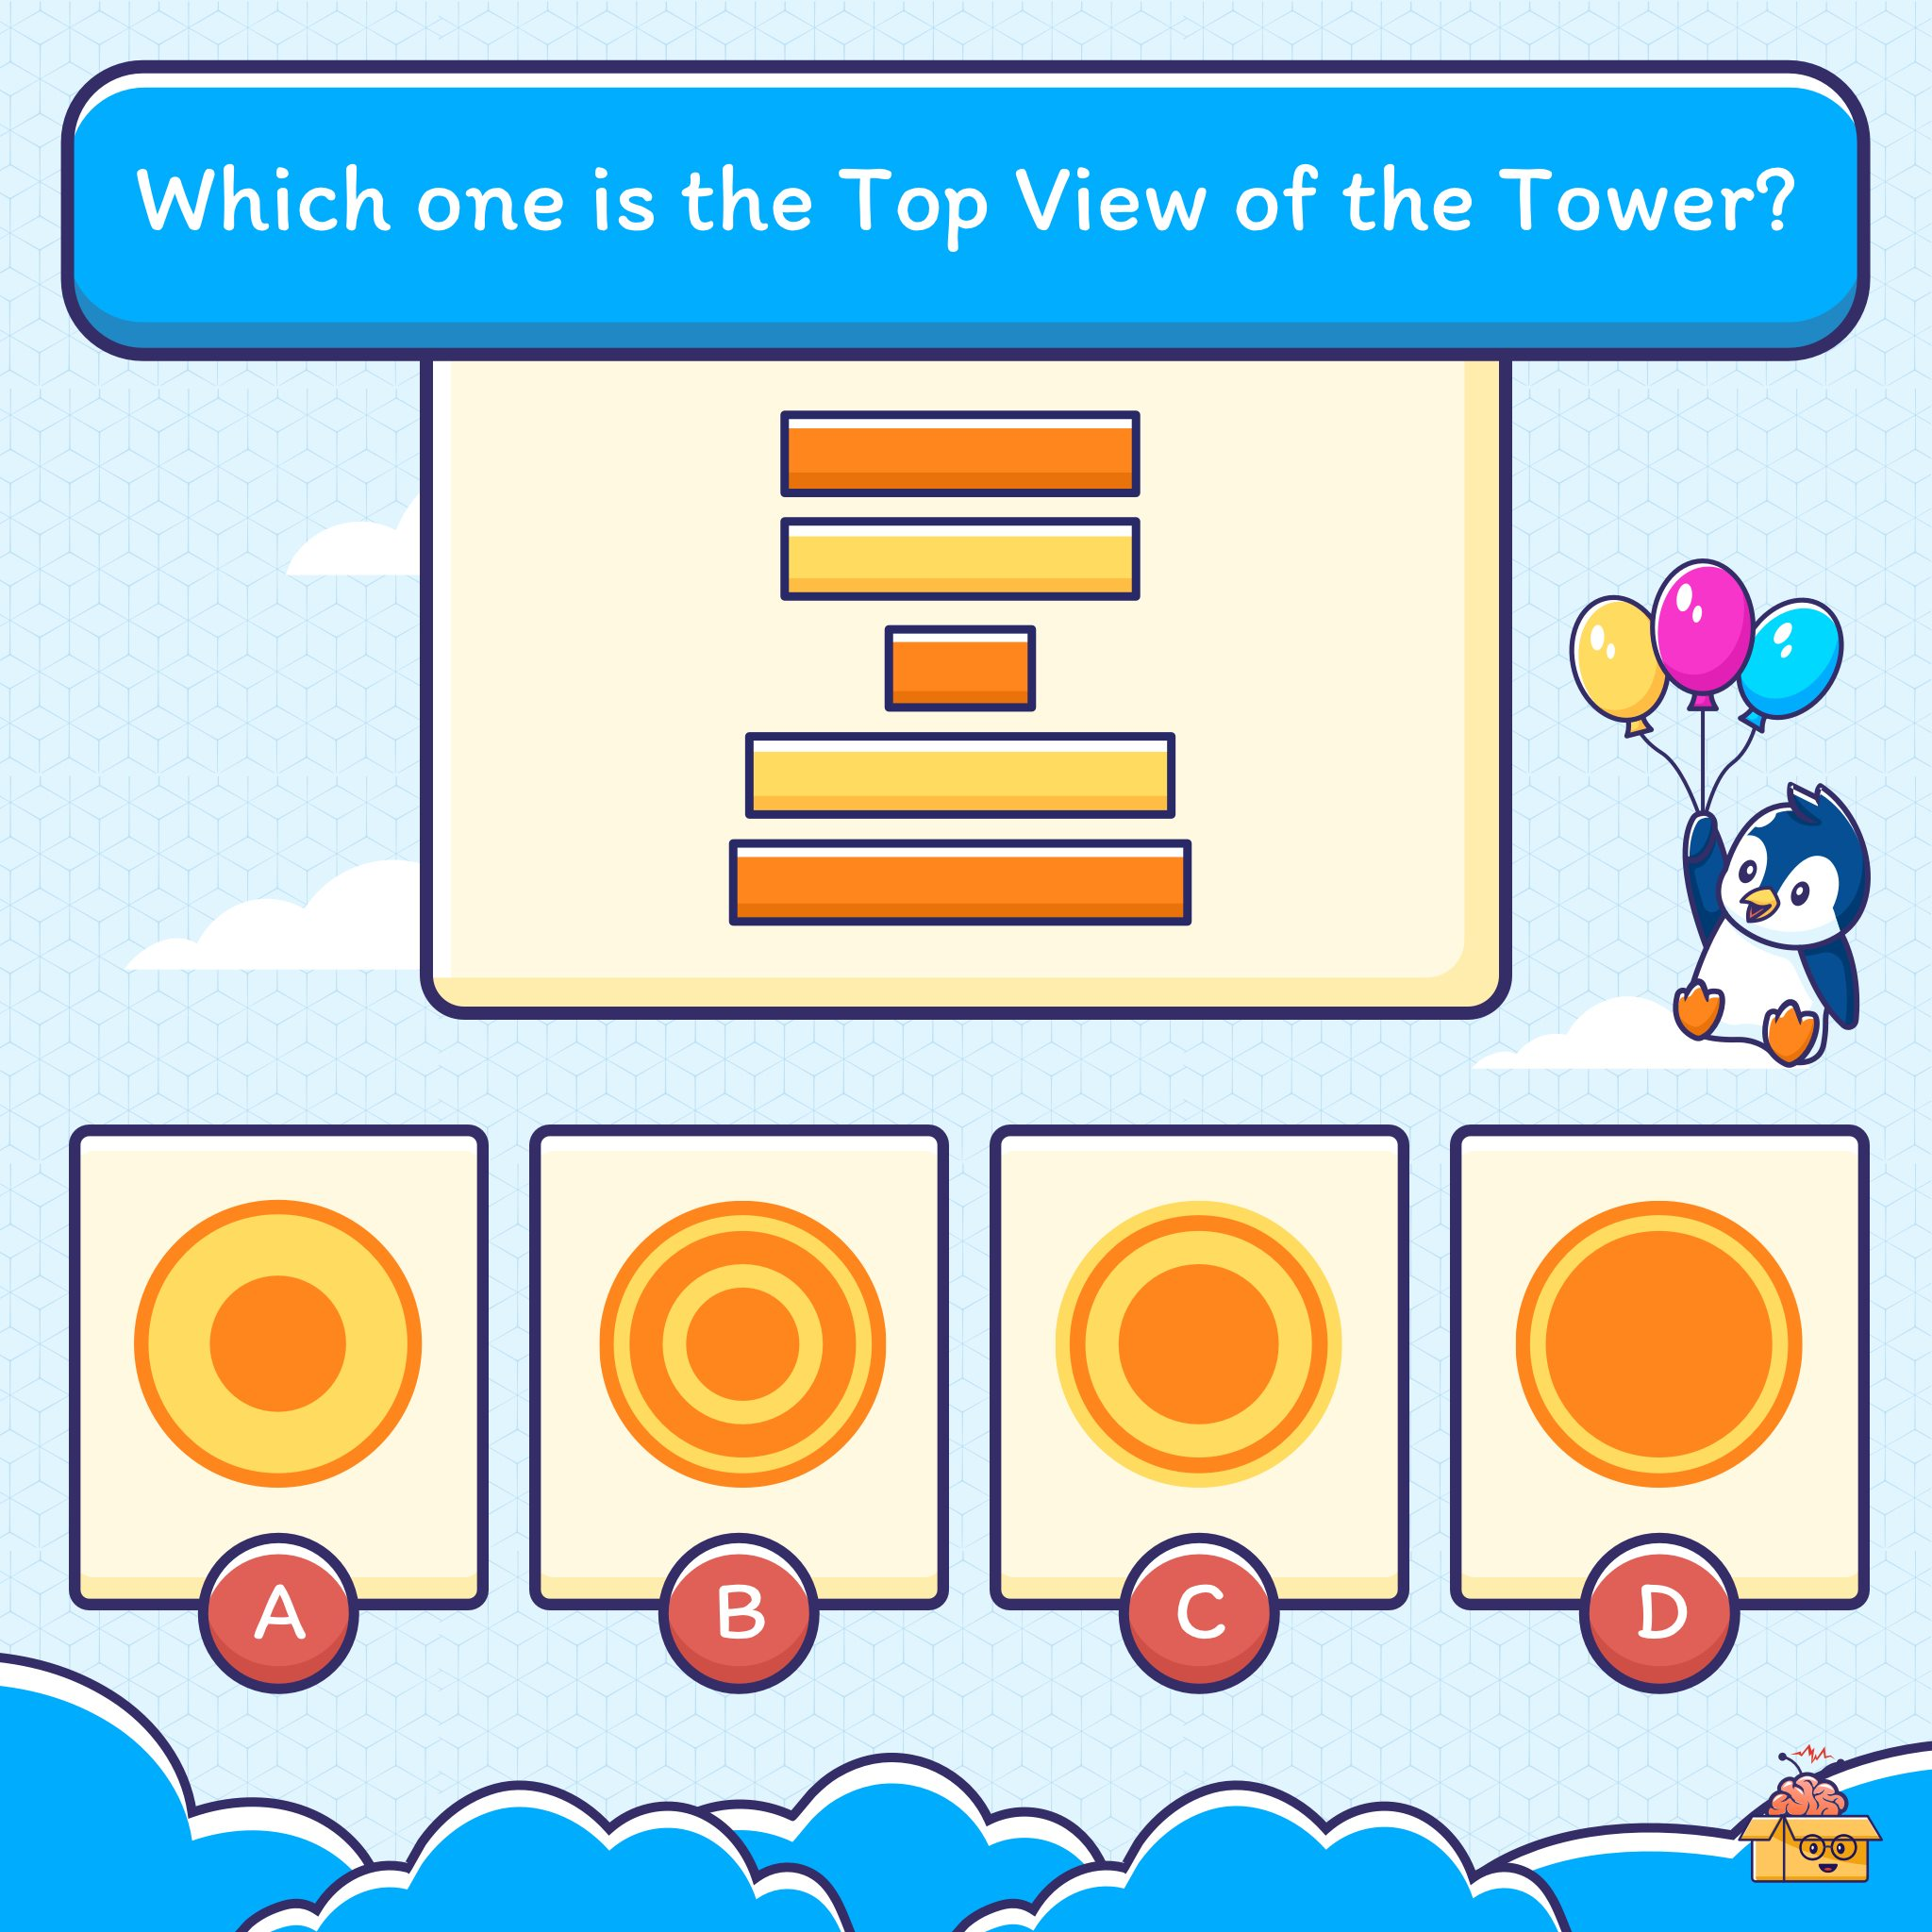 This puzzle will test your pattern-recognising skills. Let's see if you can guess the correct top view of the tower.